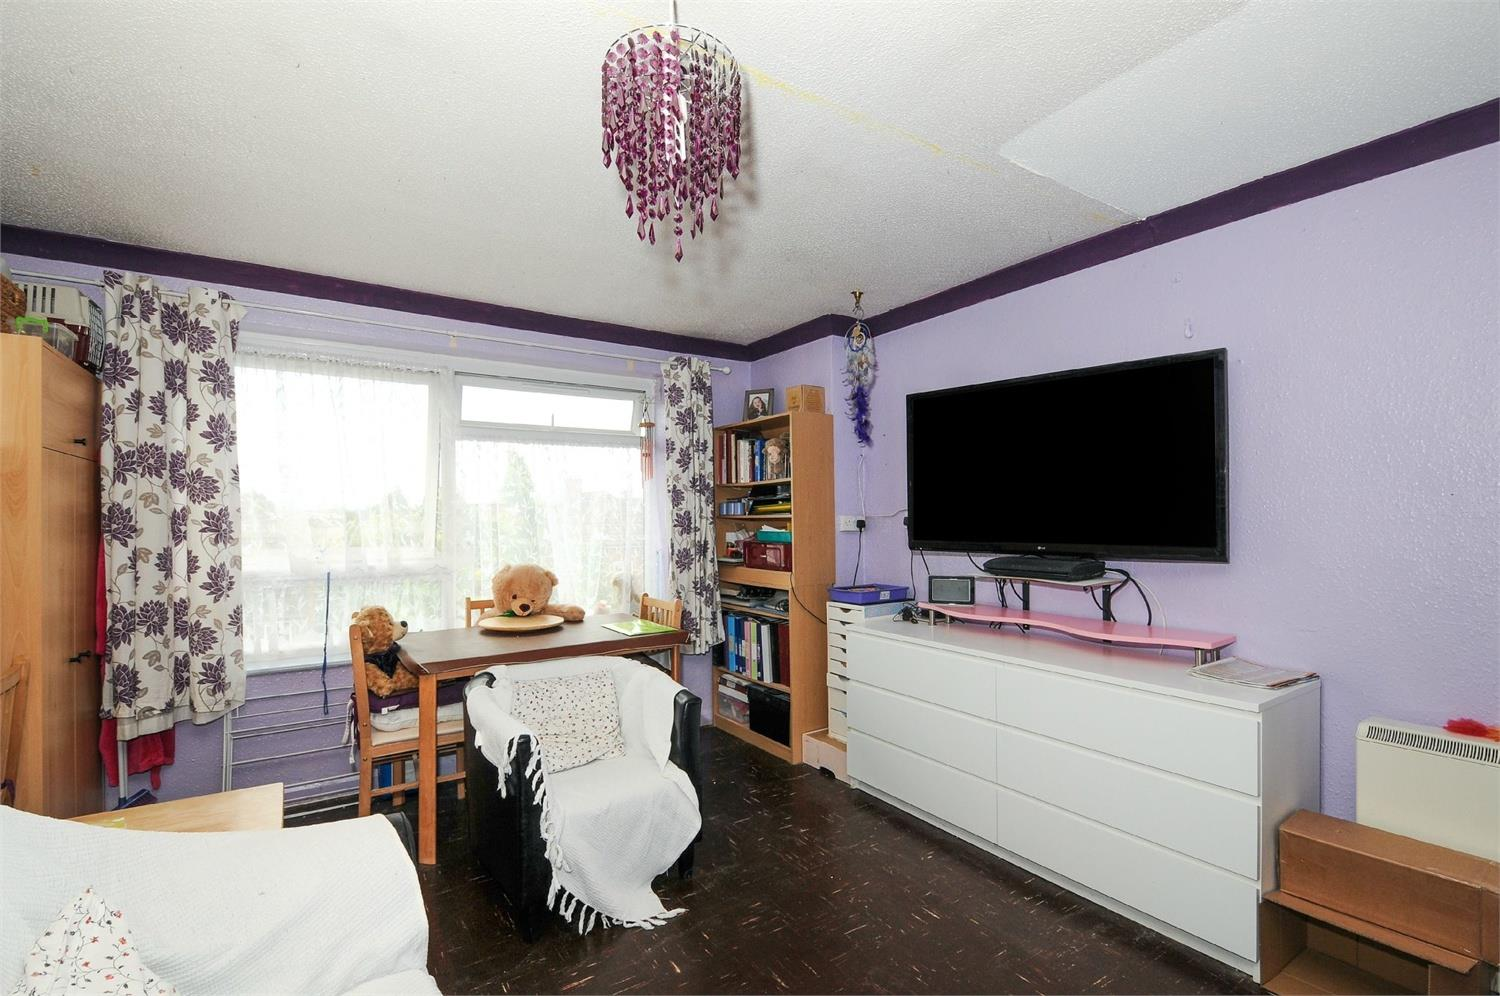 1 Bedroom Flat For Sale In Molesey Avenue West Molesey Kt8 London